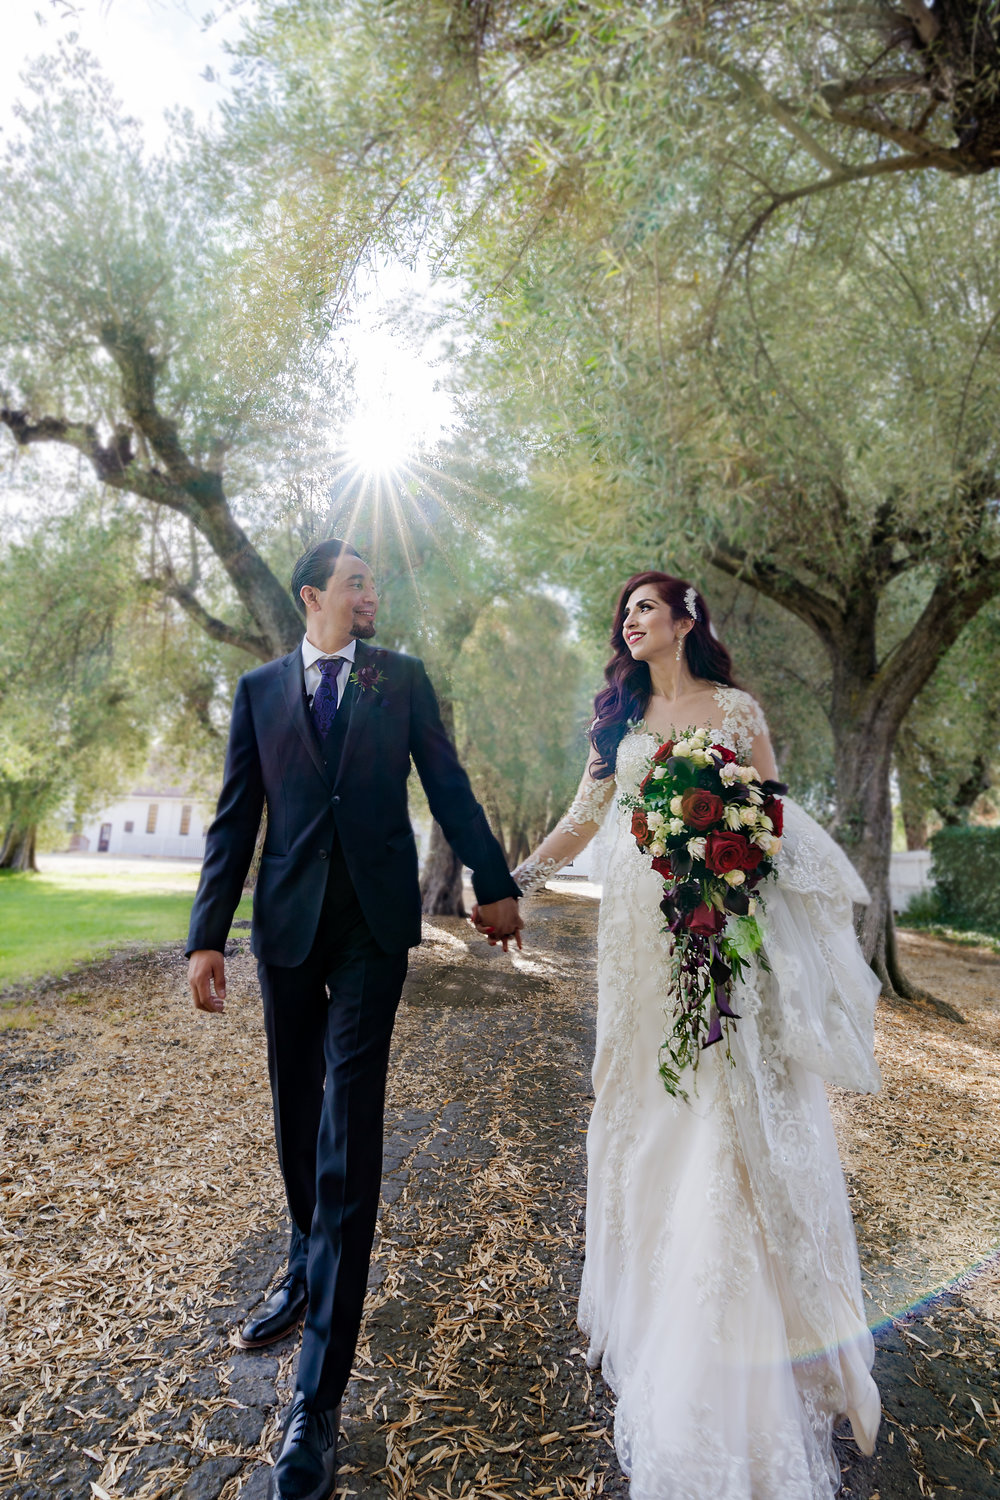 Weddings - Learn more about our Wedding Photography Services and View our Featured Real Wedding Galleries.